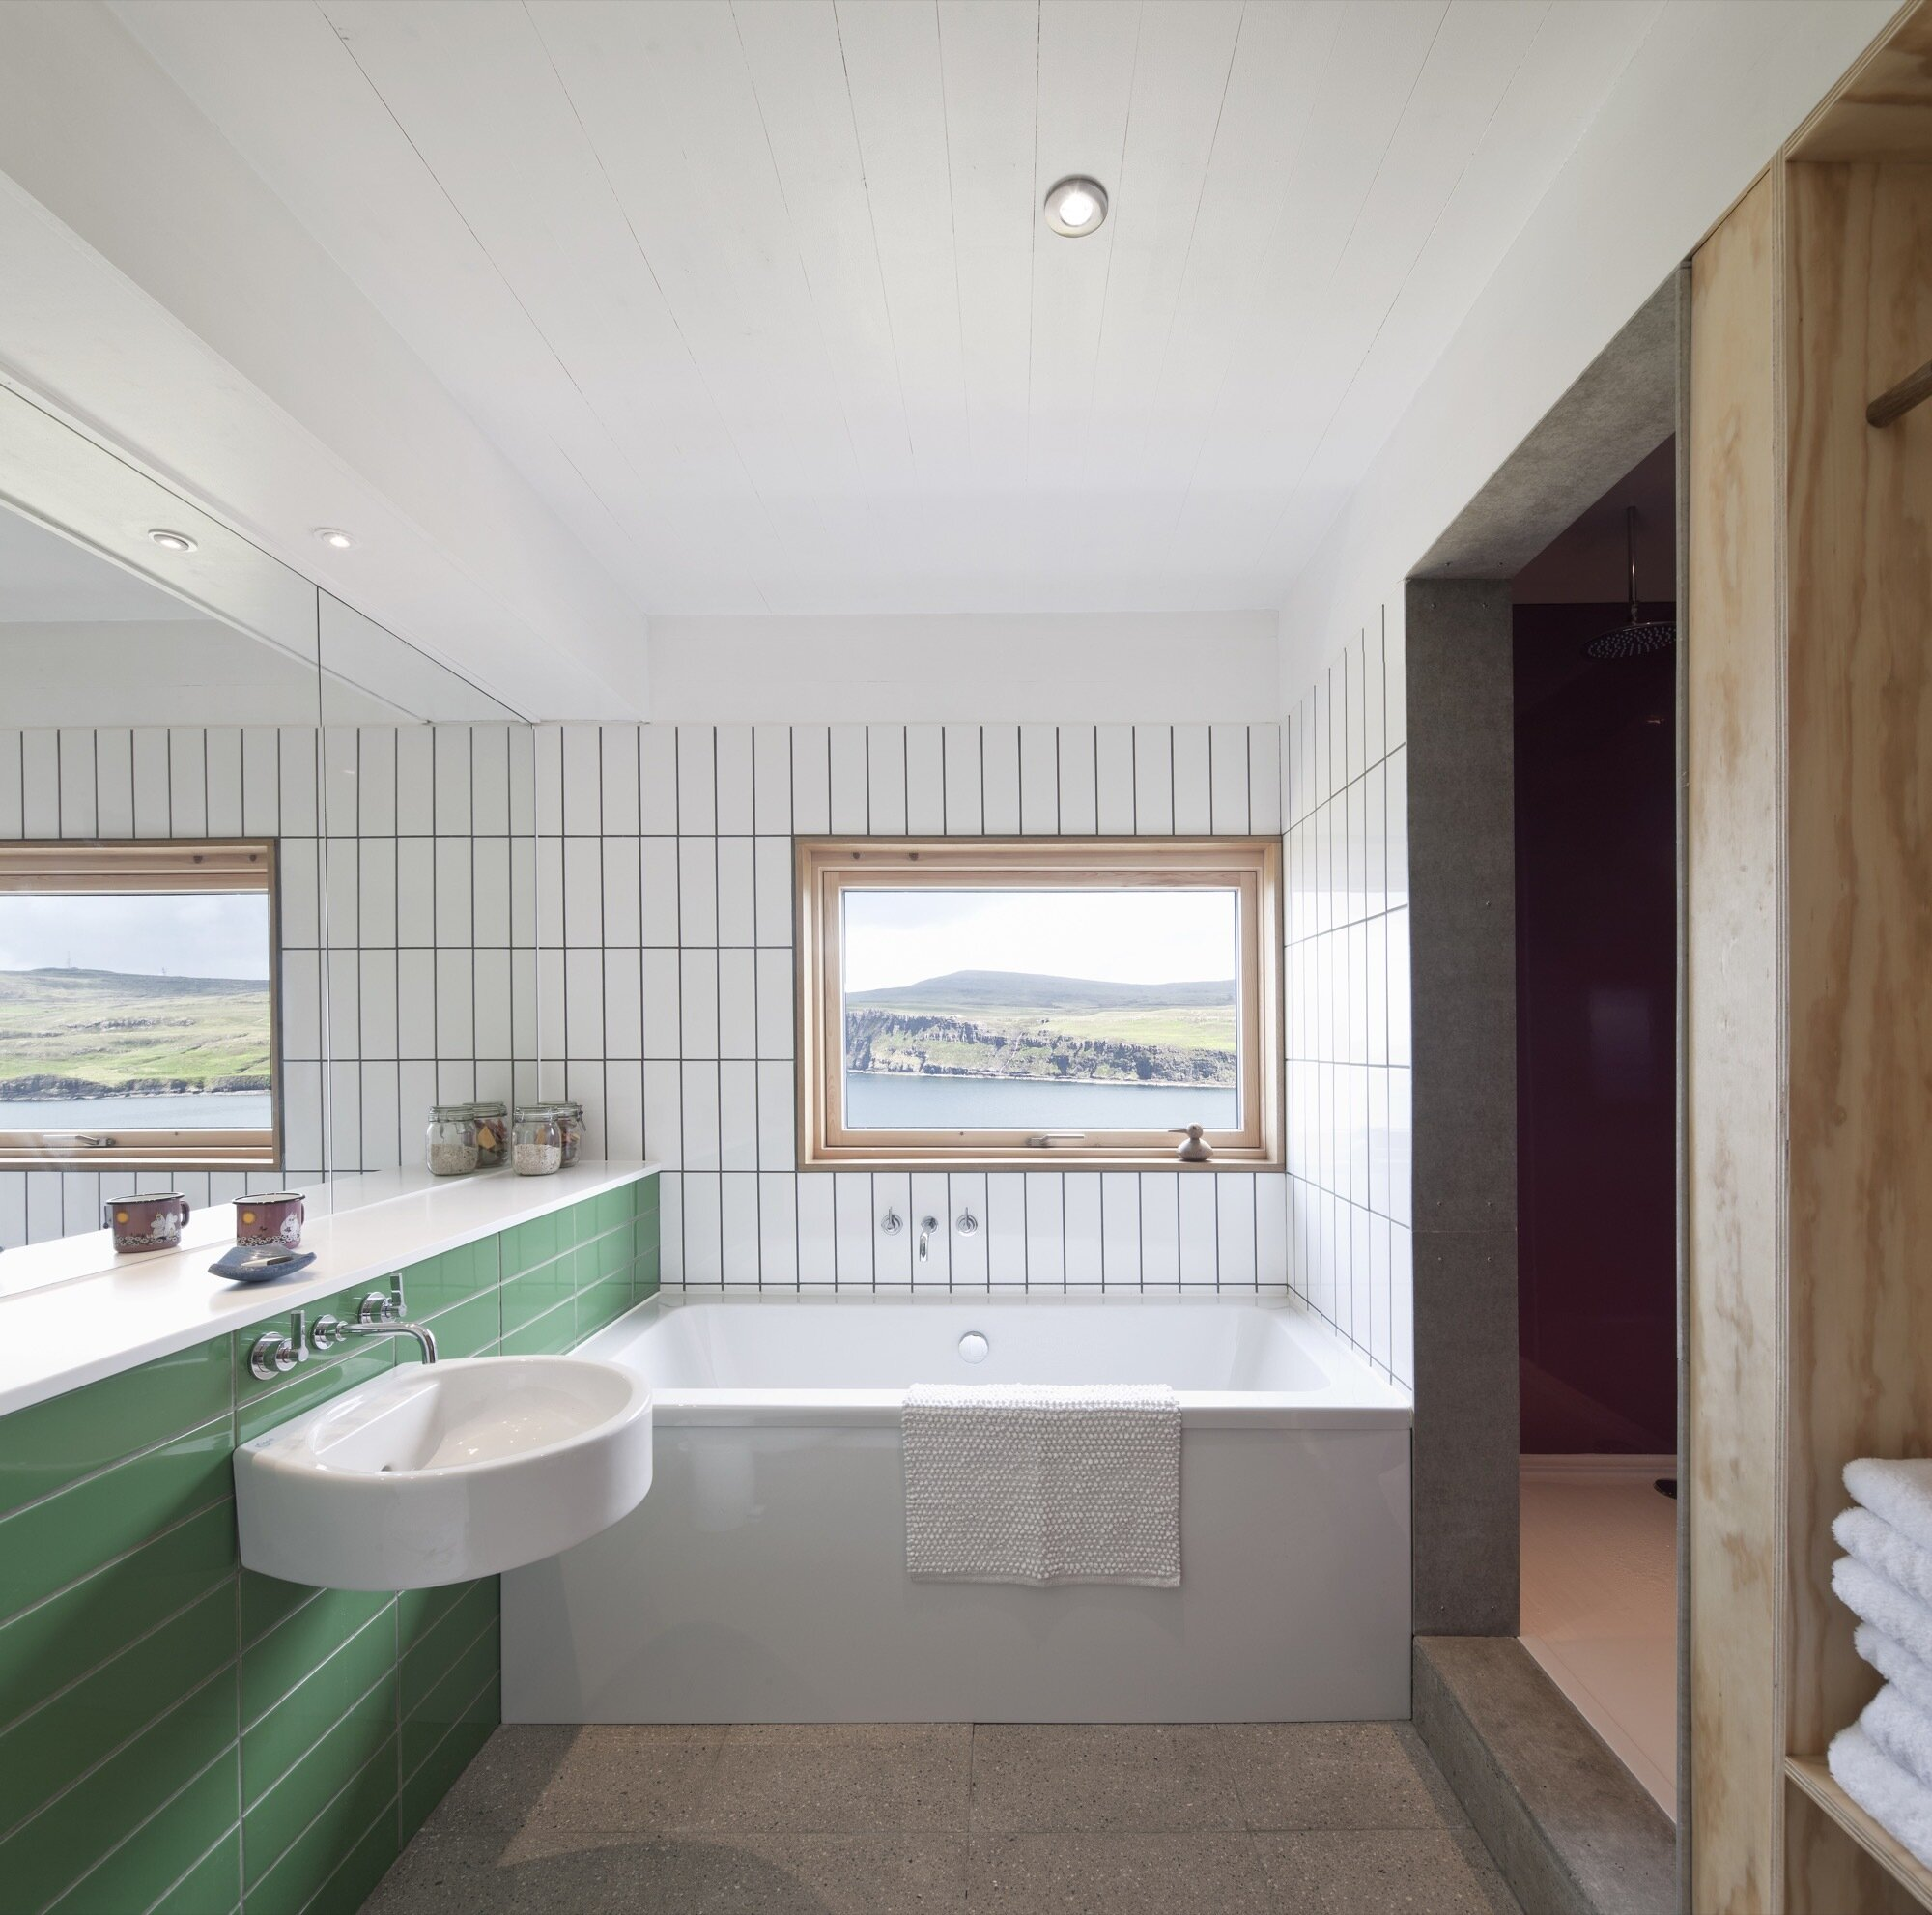 Tinhouse - Rural Design - Skye - Bathroom - Humble Homes